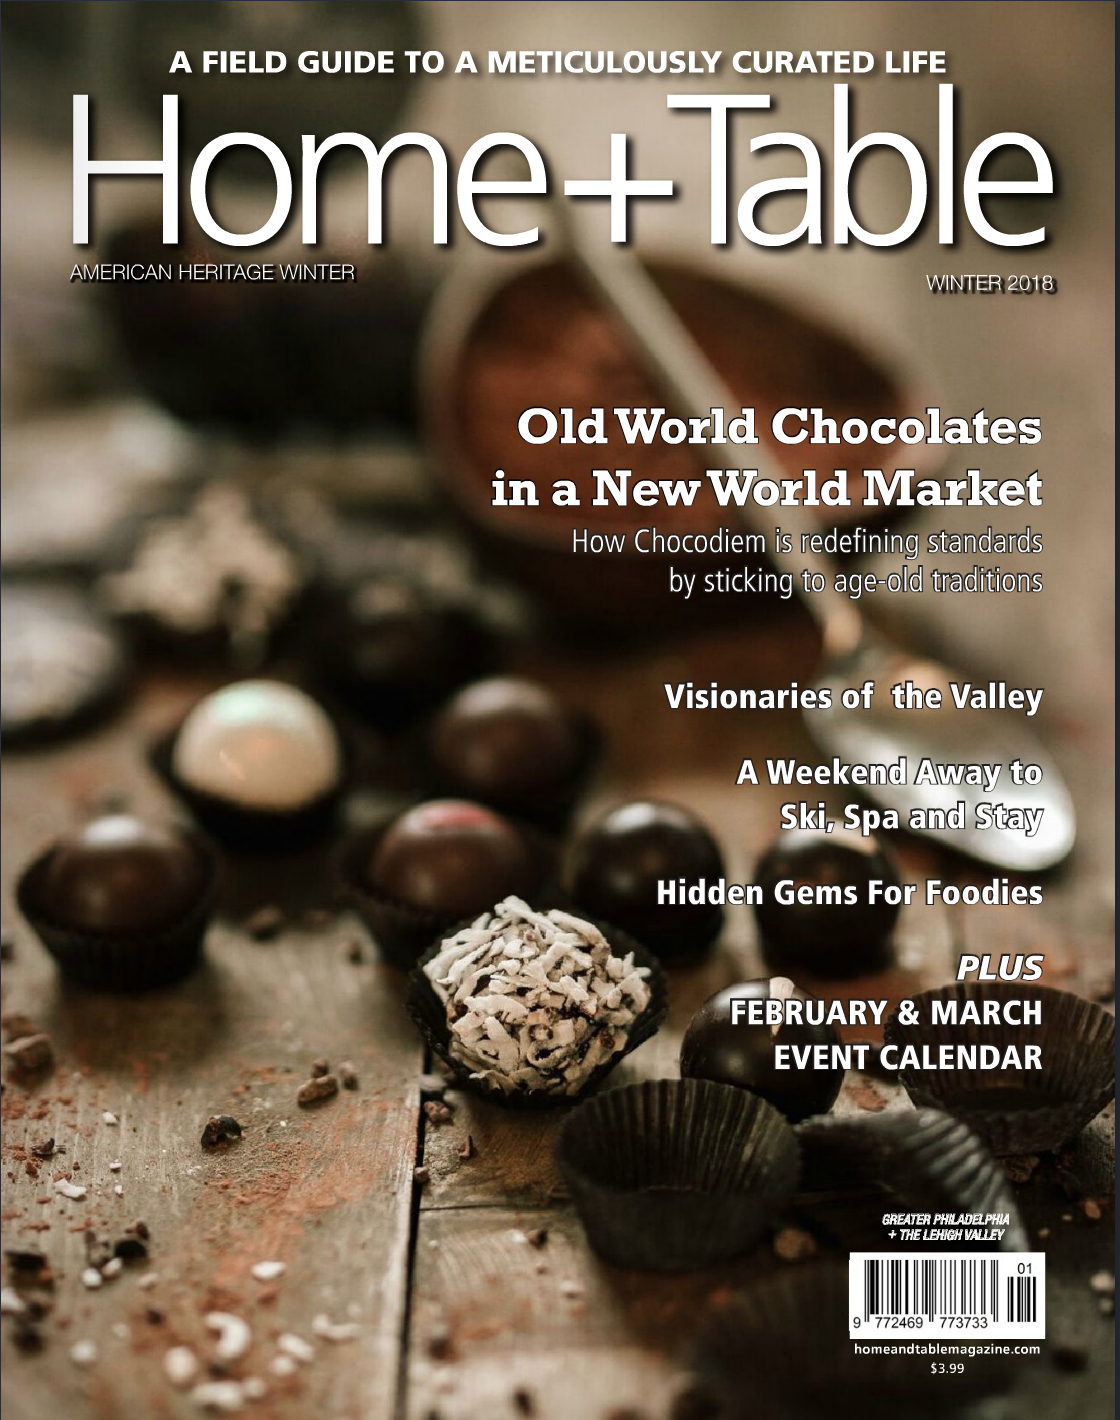 Winter 2018 issue of Home and Table Magazine